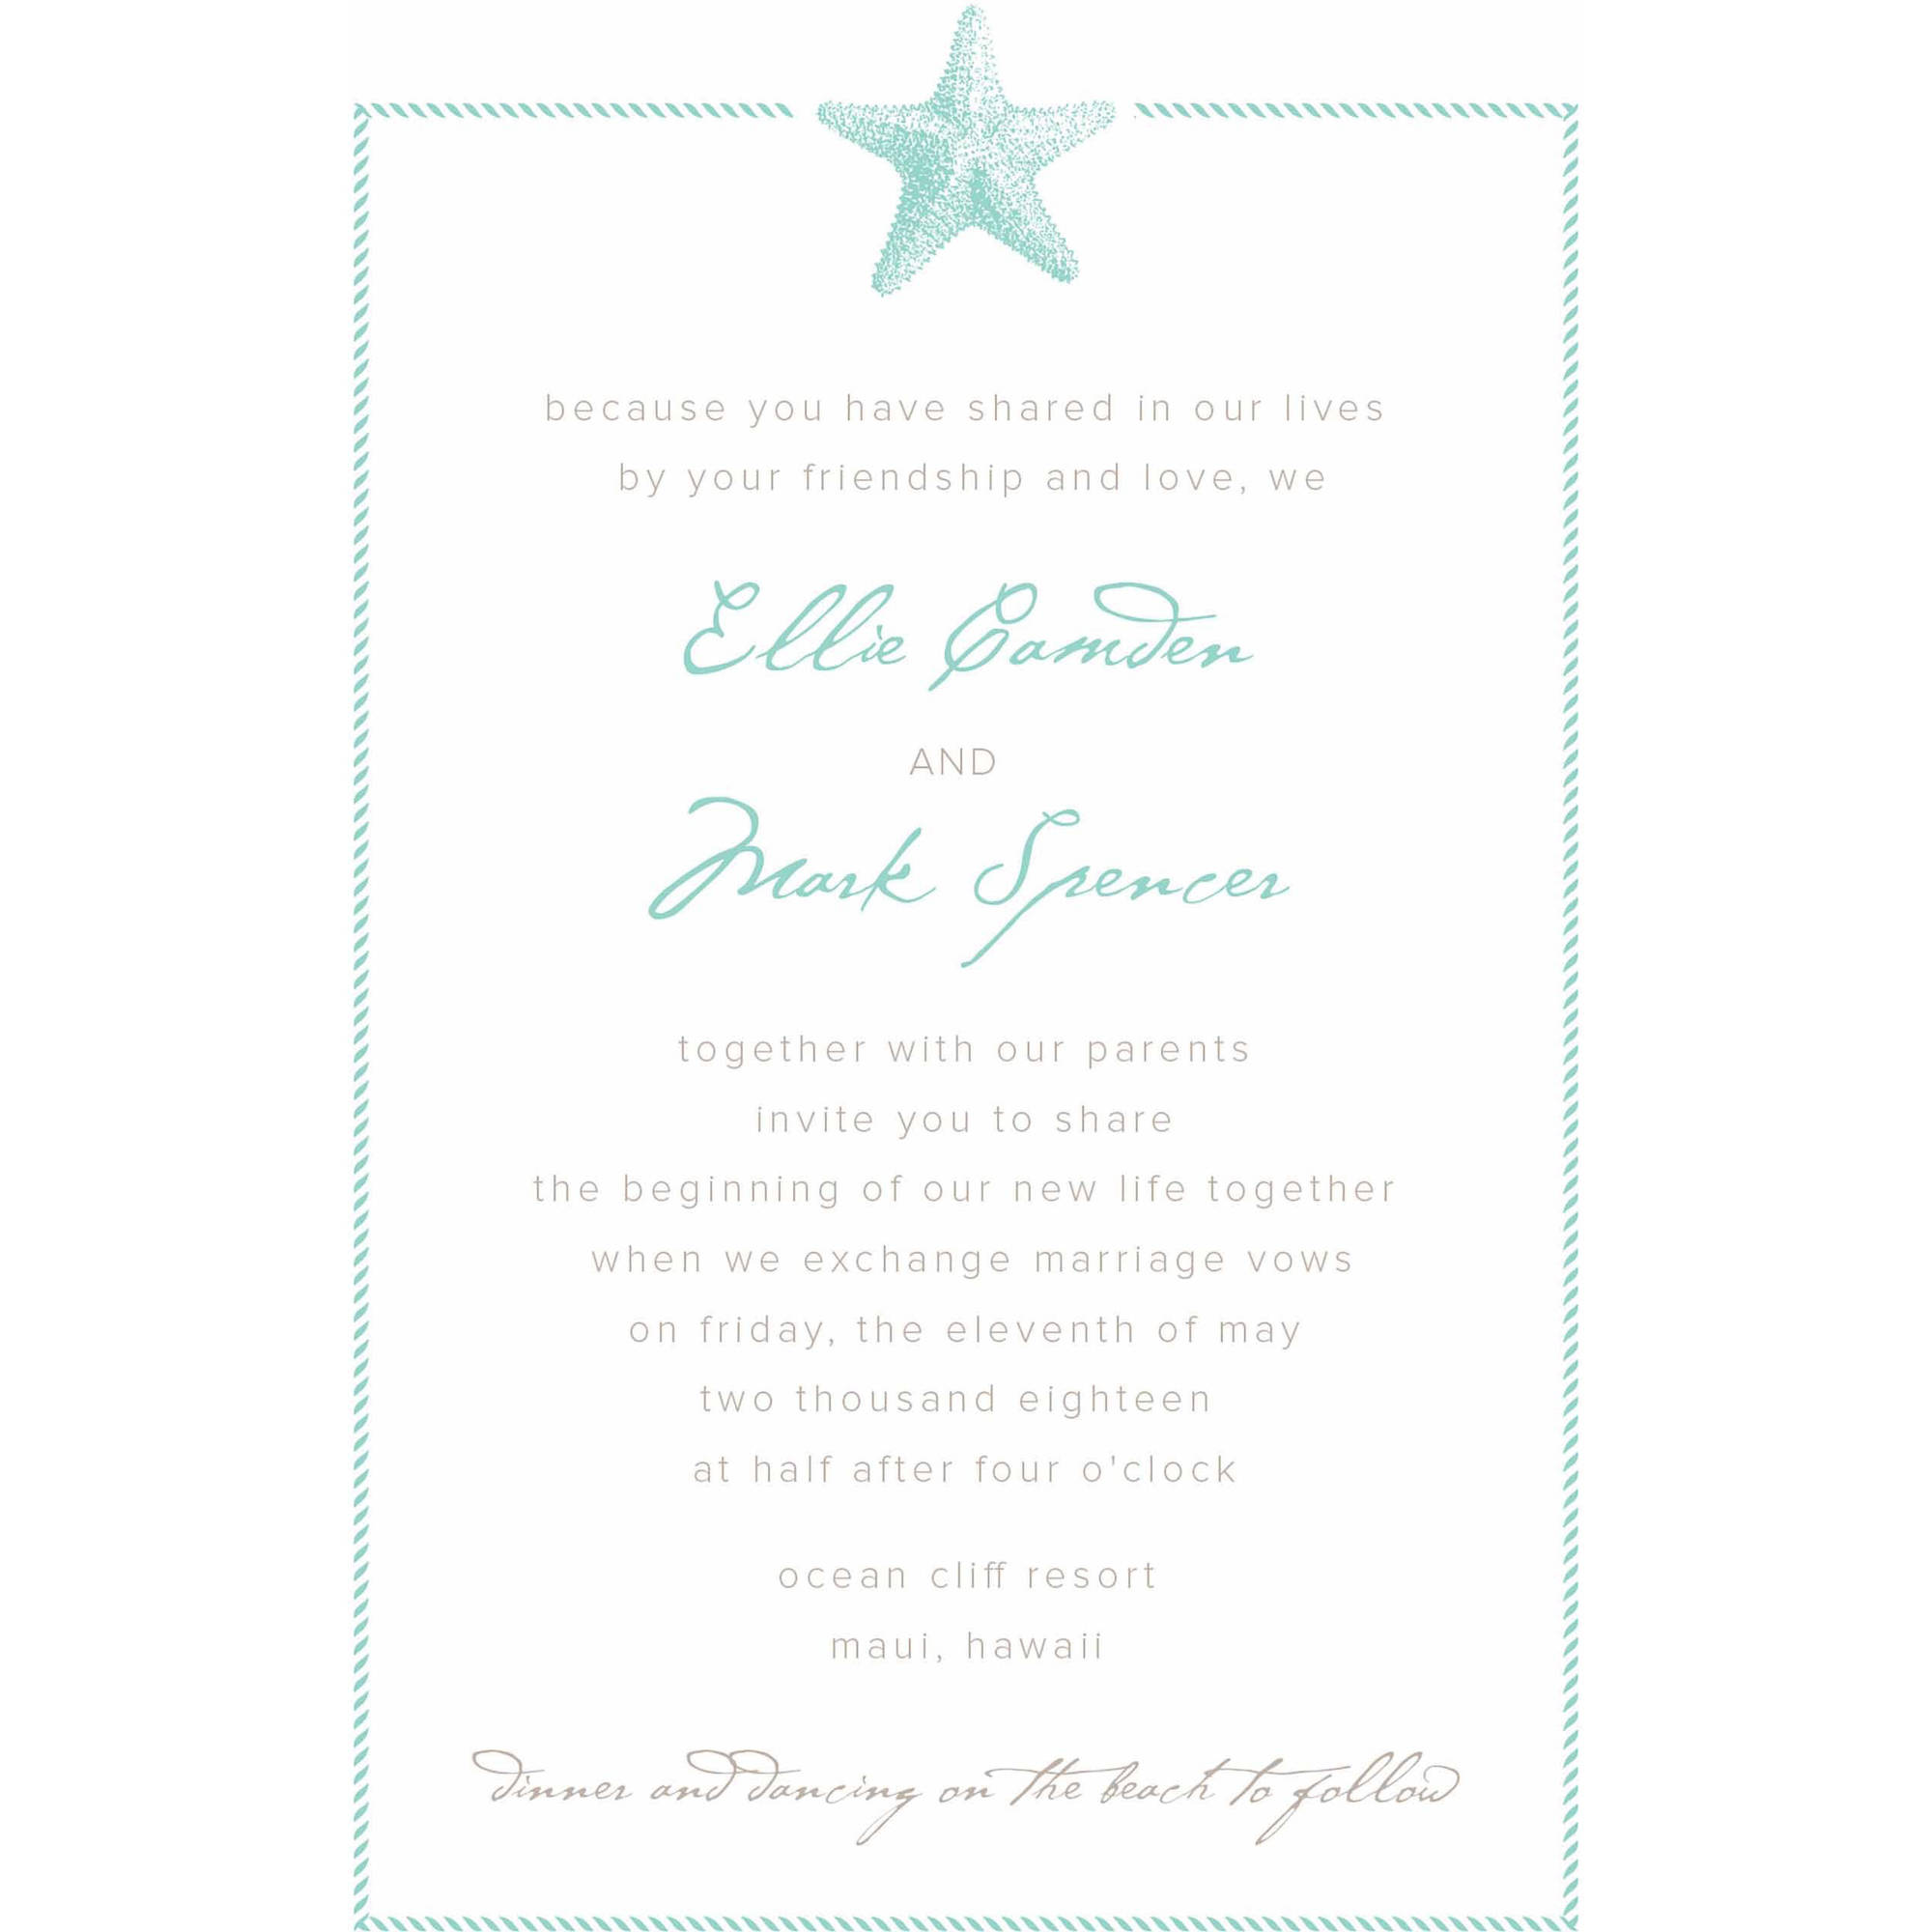 Sophisticated Starfish Standard Wedding Invitation - Walmart.com